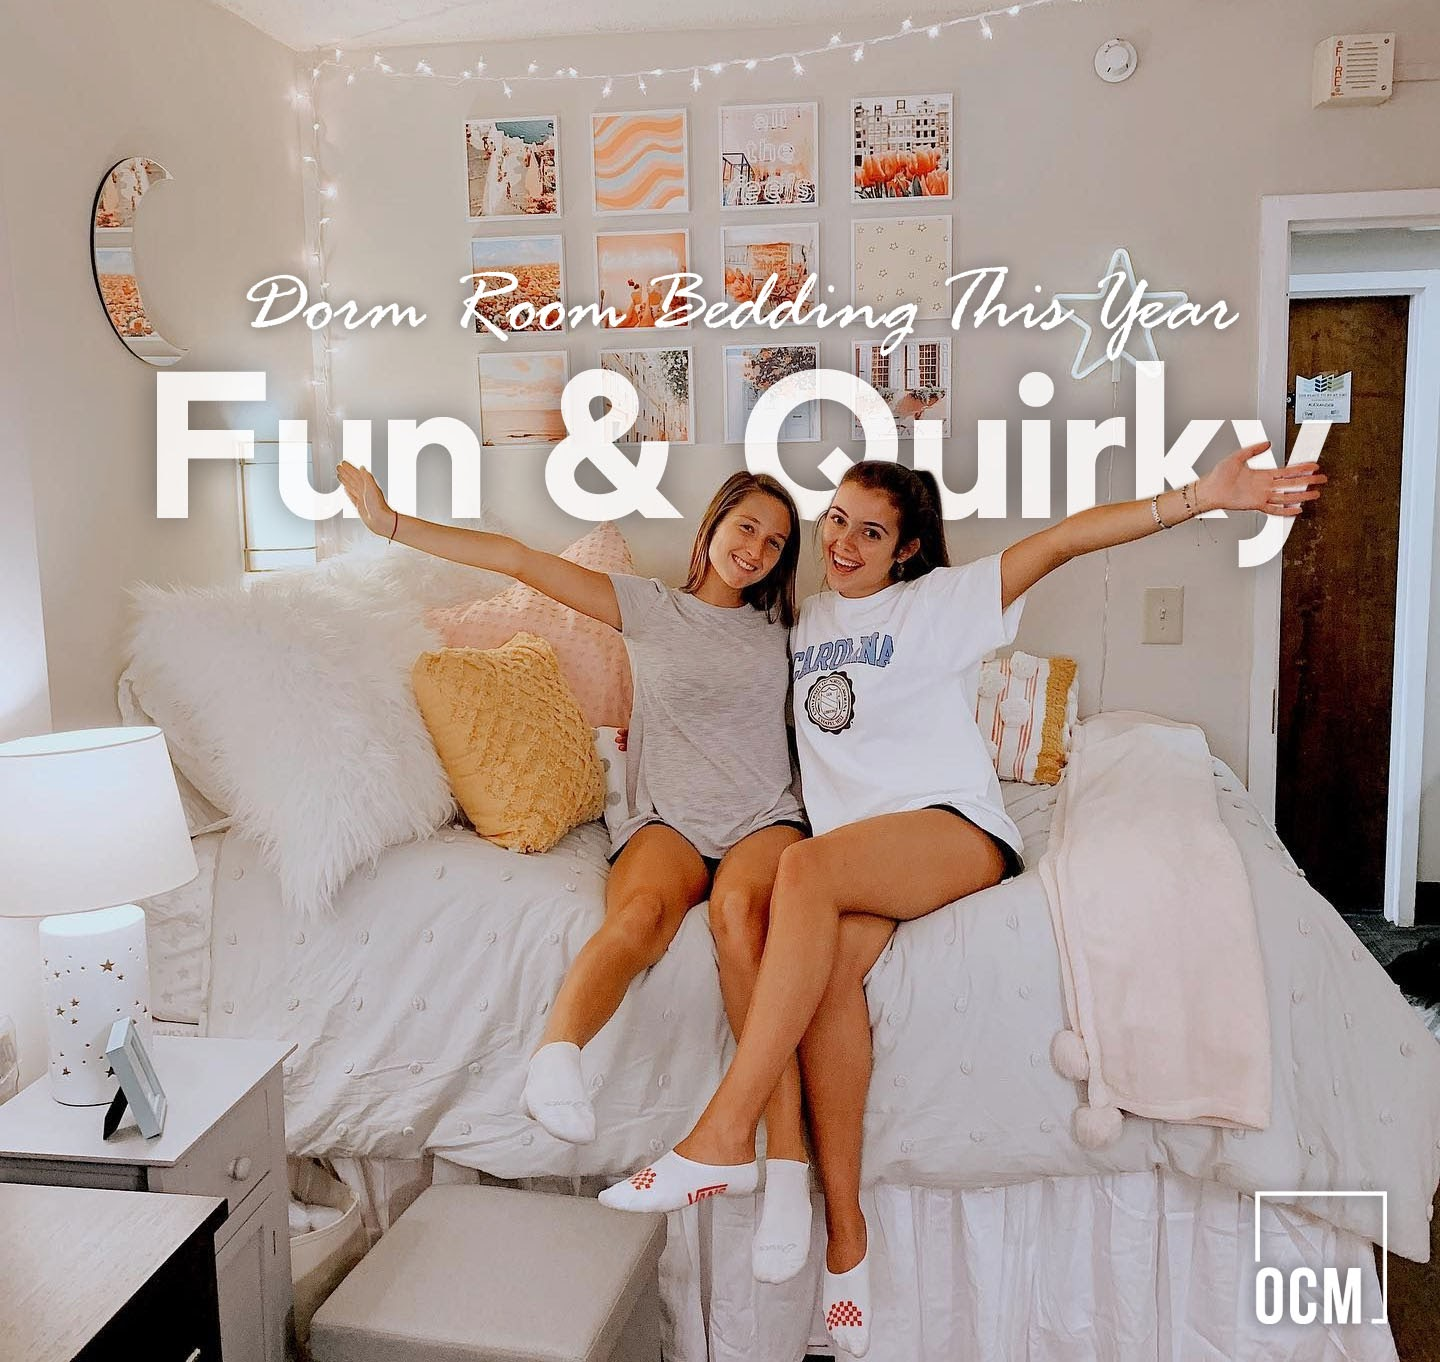 Two young girls sit on bed room